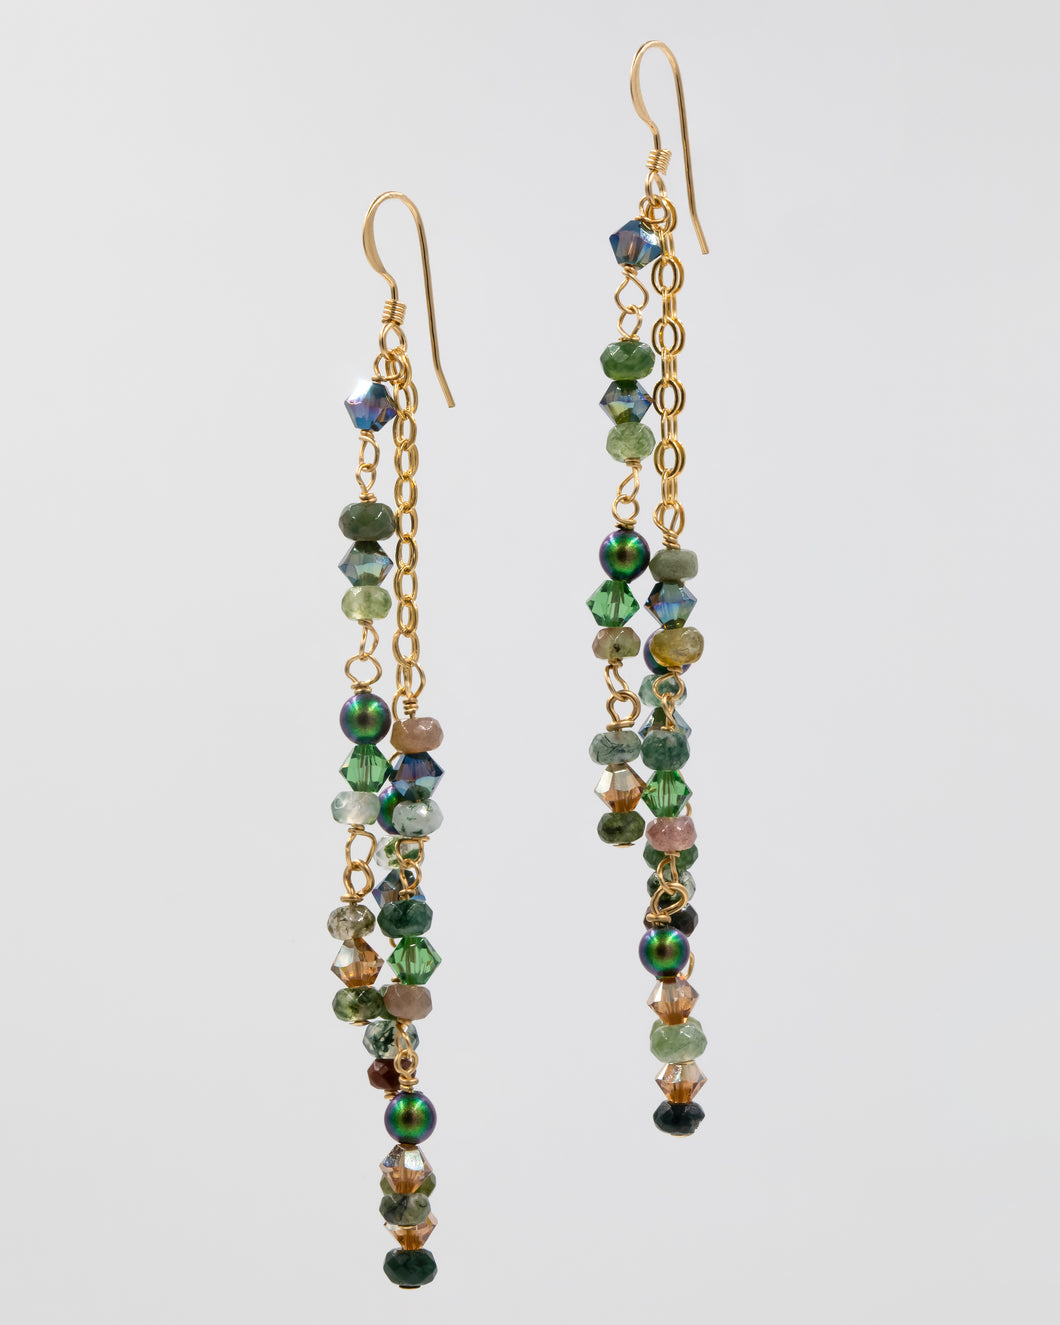 Picture of earrings with moss agate, Swarovski crystal, and pearls